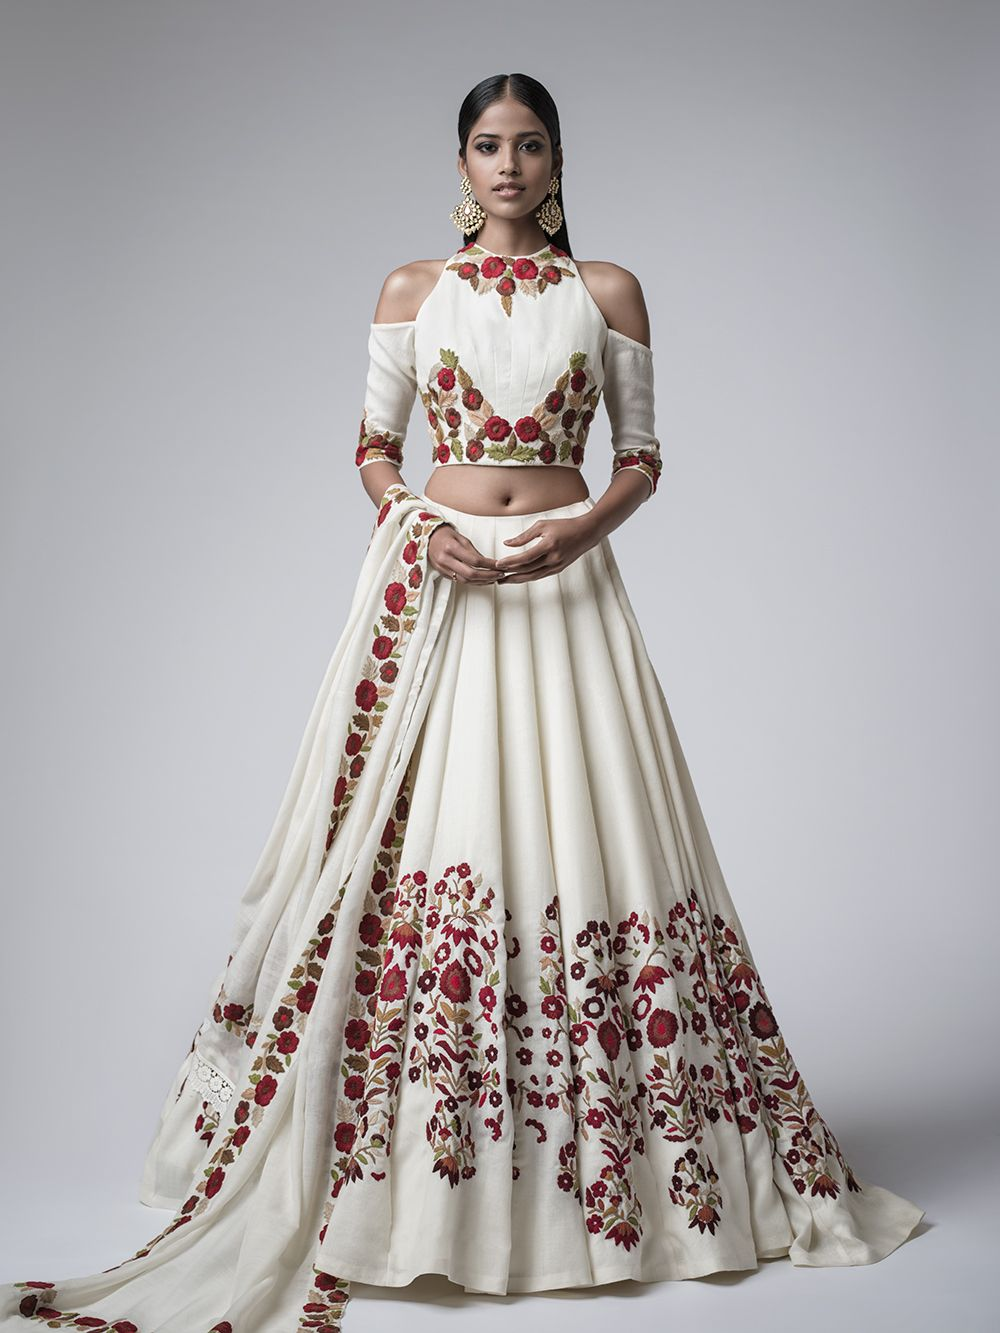 Wedding dresses asia  Enchanted by India and South Asia  u bollywoodhqs Manish